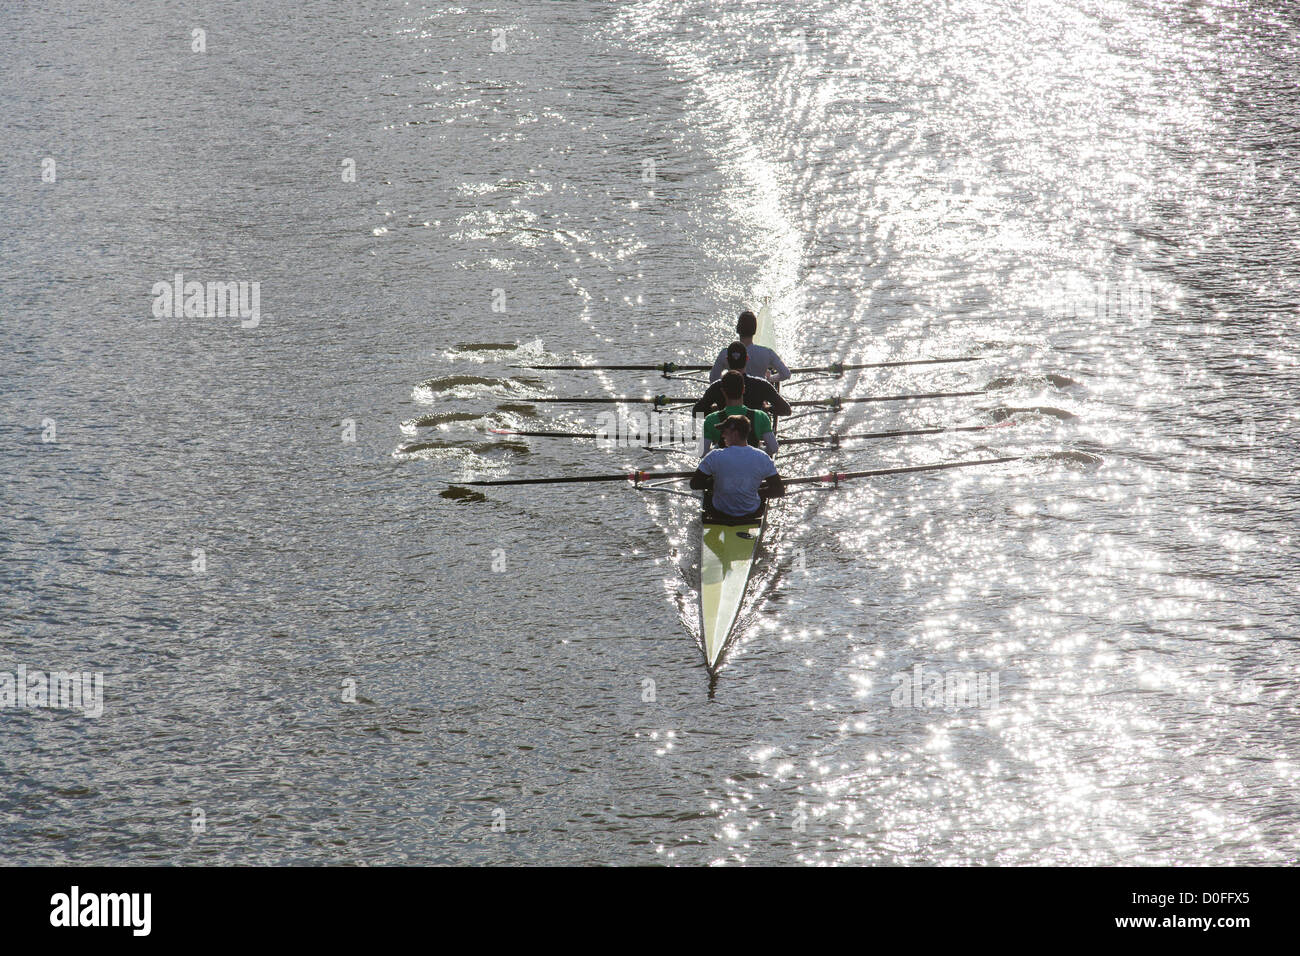 Men's coxless quad sculls, rowing on a sunlit river in the Head of the River Race, Bristol, February 2012. - Stock Image